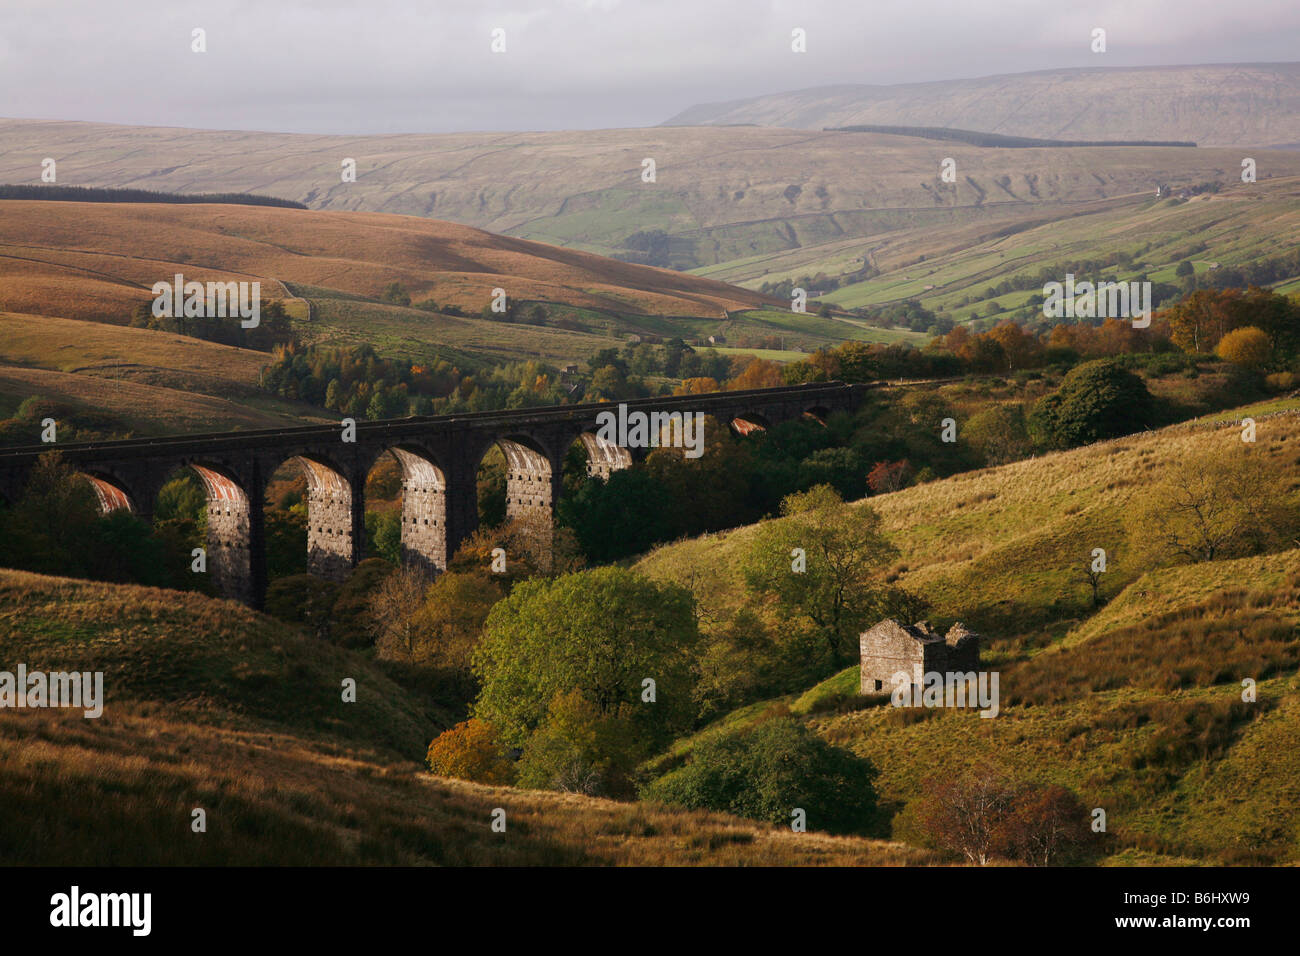 Roadside view of Dent Head Viaduct on the Settle and Carlisle Railway near the Cumbrian village of Cowgill - Stock Image